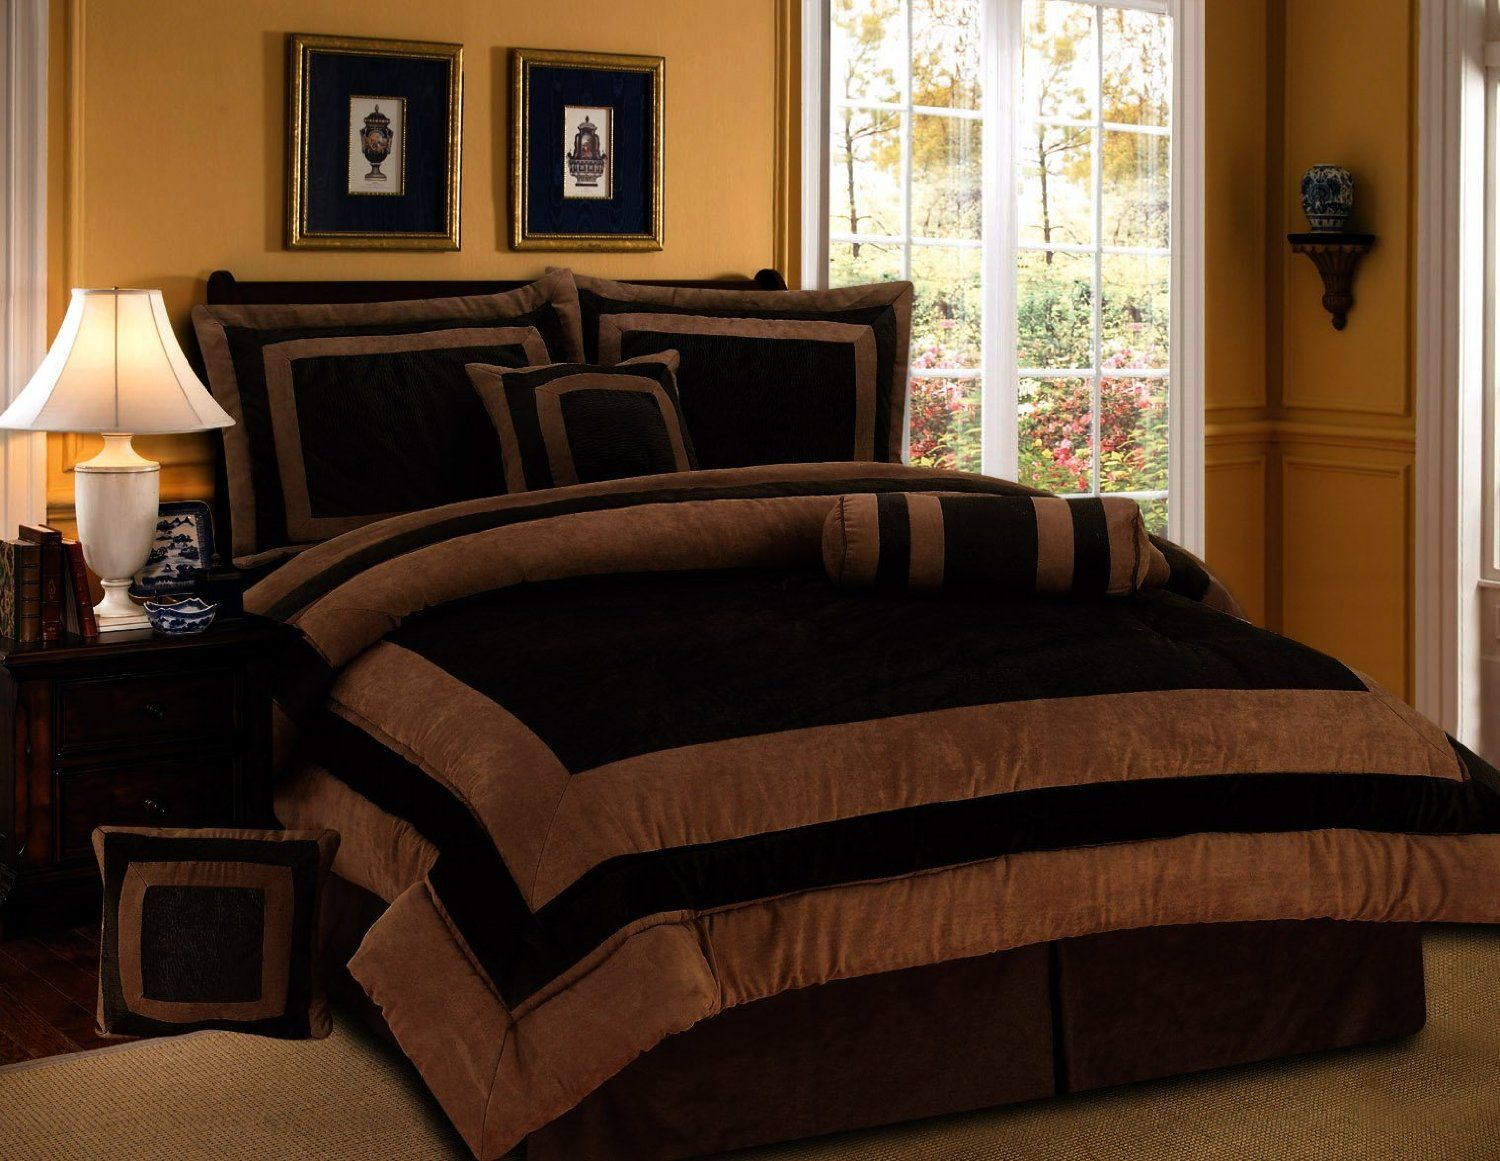 Bed sheet patterns men - 7 Pieces Chocolate Brown Suede Short Fur Comforter Set Queen Bedding Set Bed In